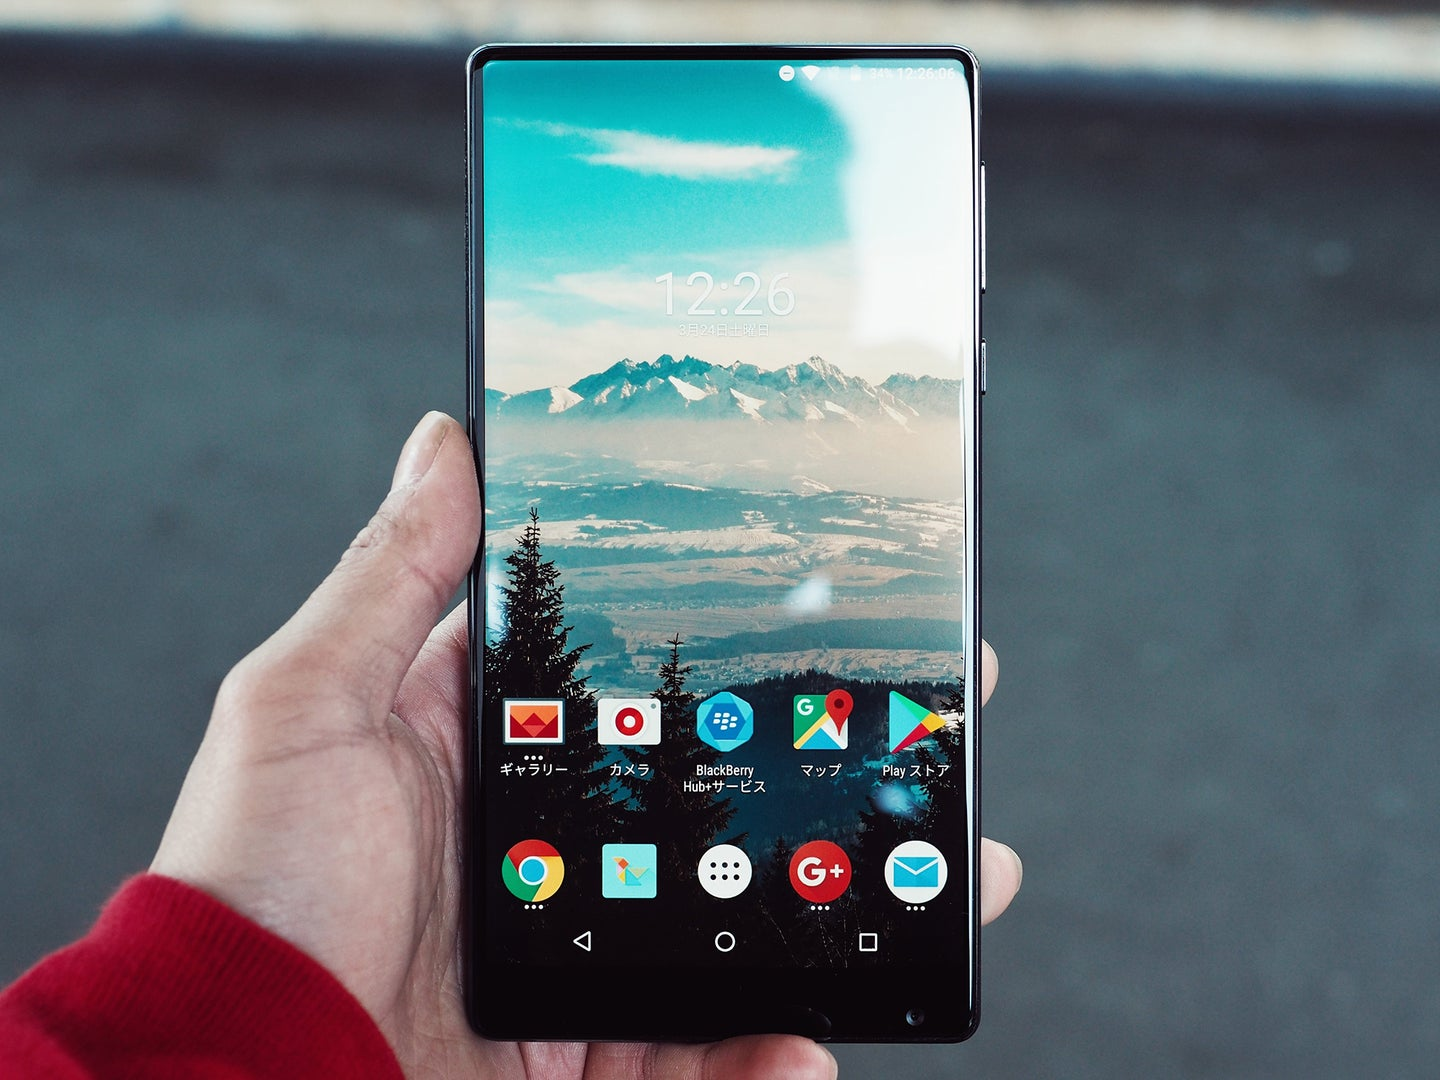 A person holding an Android phone with a live background.